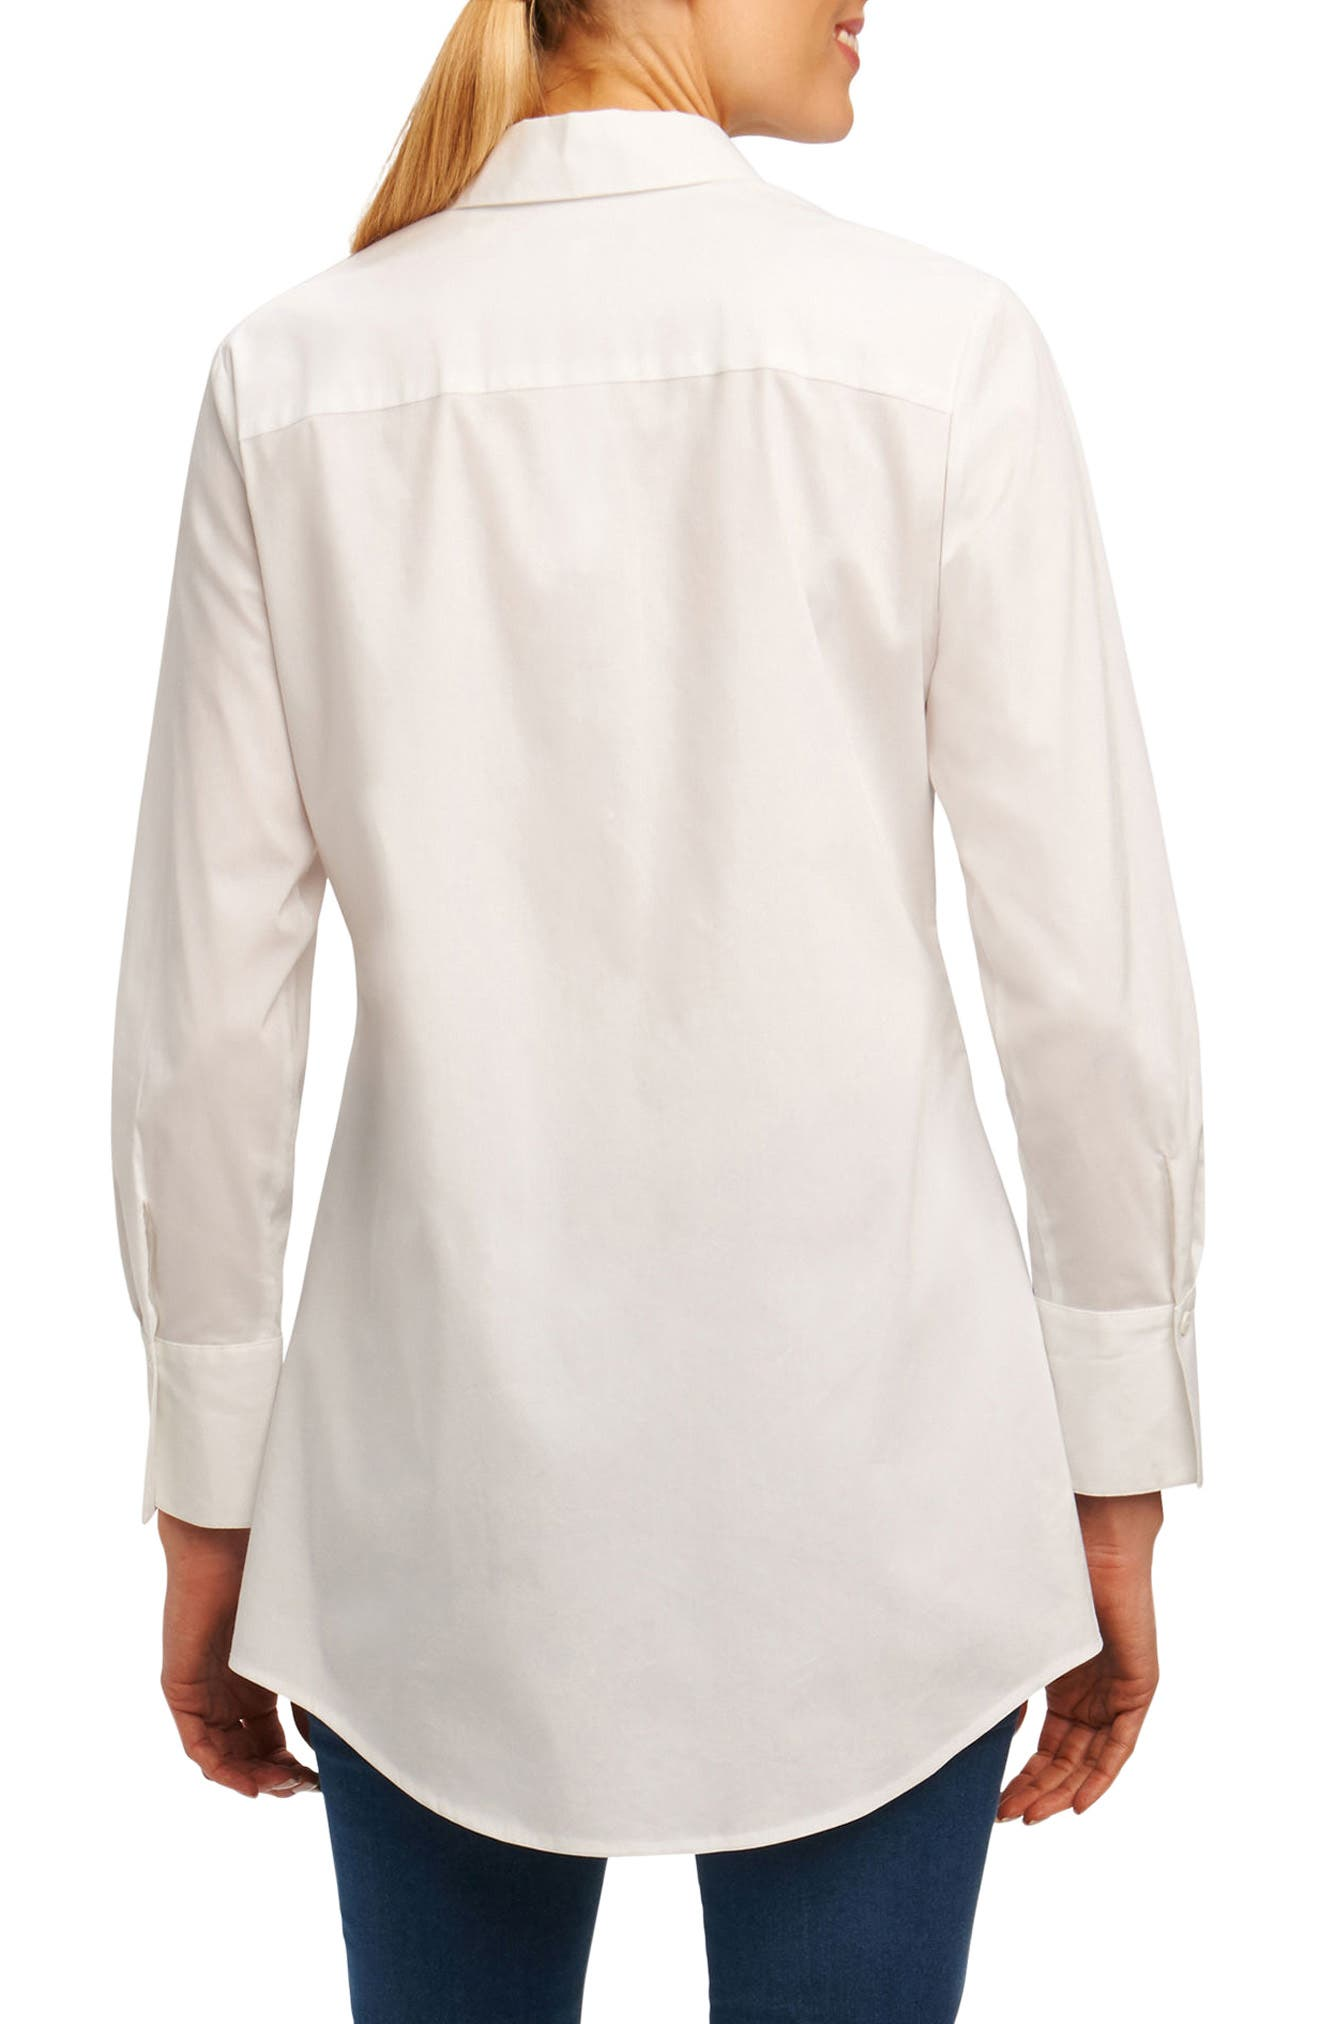 Cici Stretch Tunic Shirt,                             Alternate thumbnail 2, color,                             100